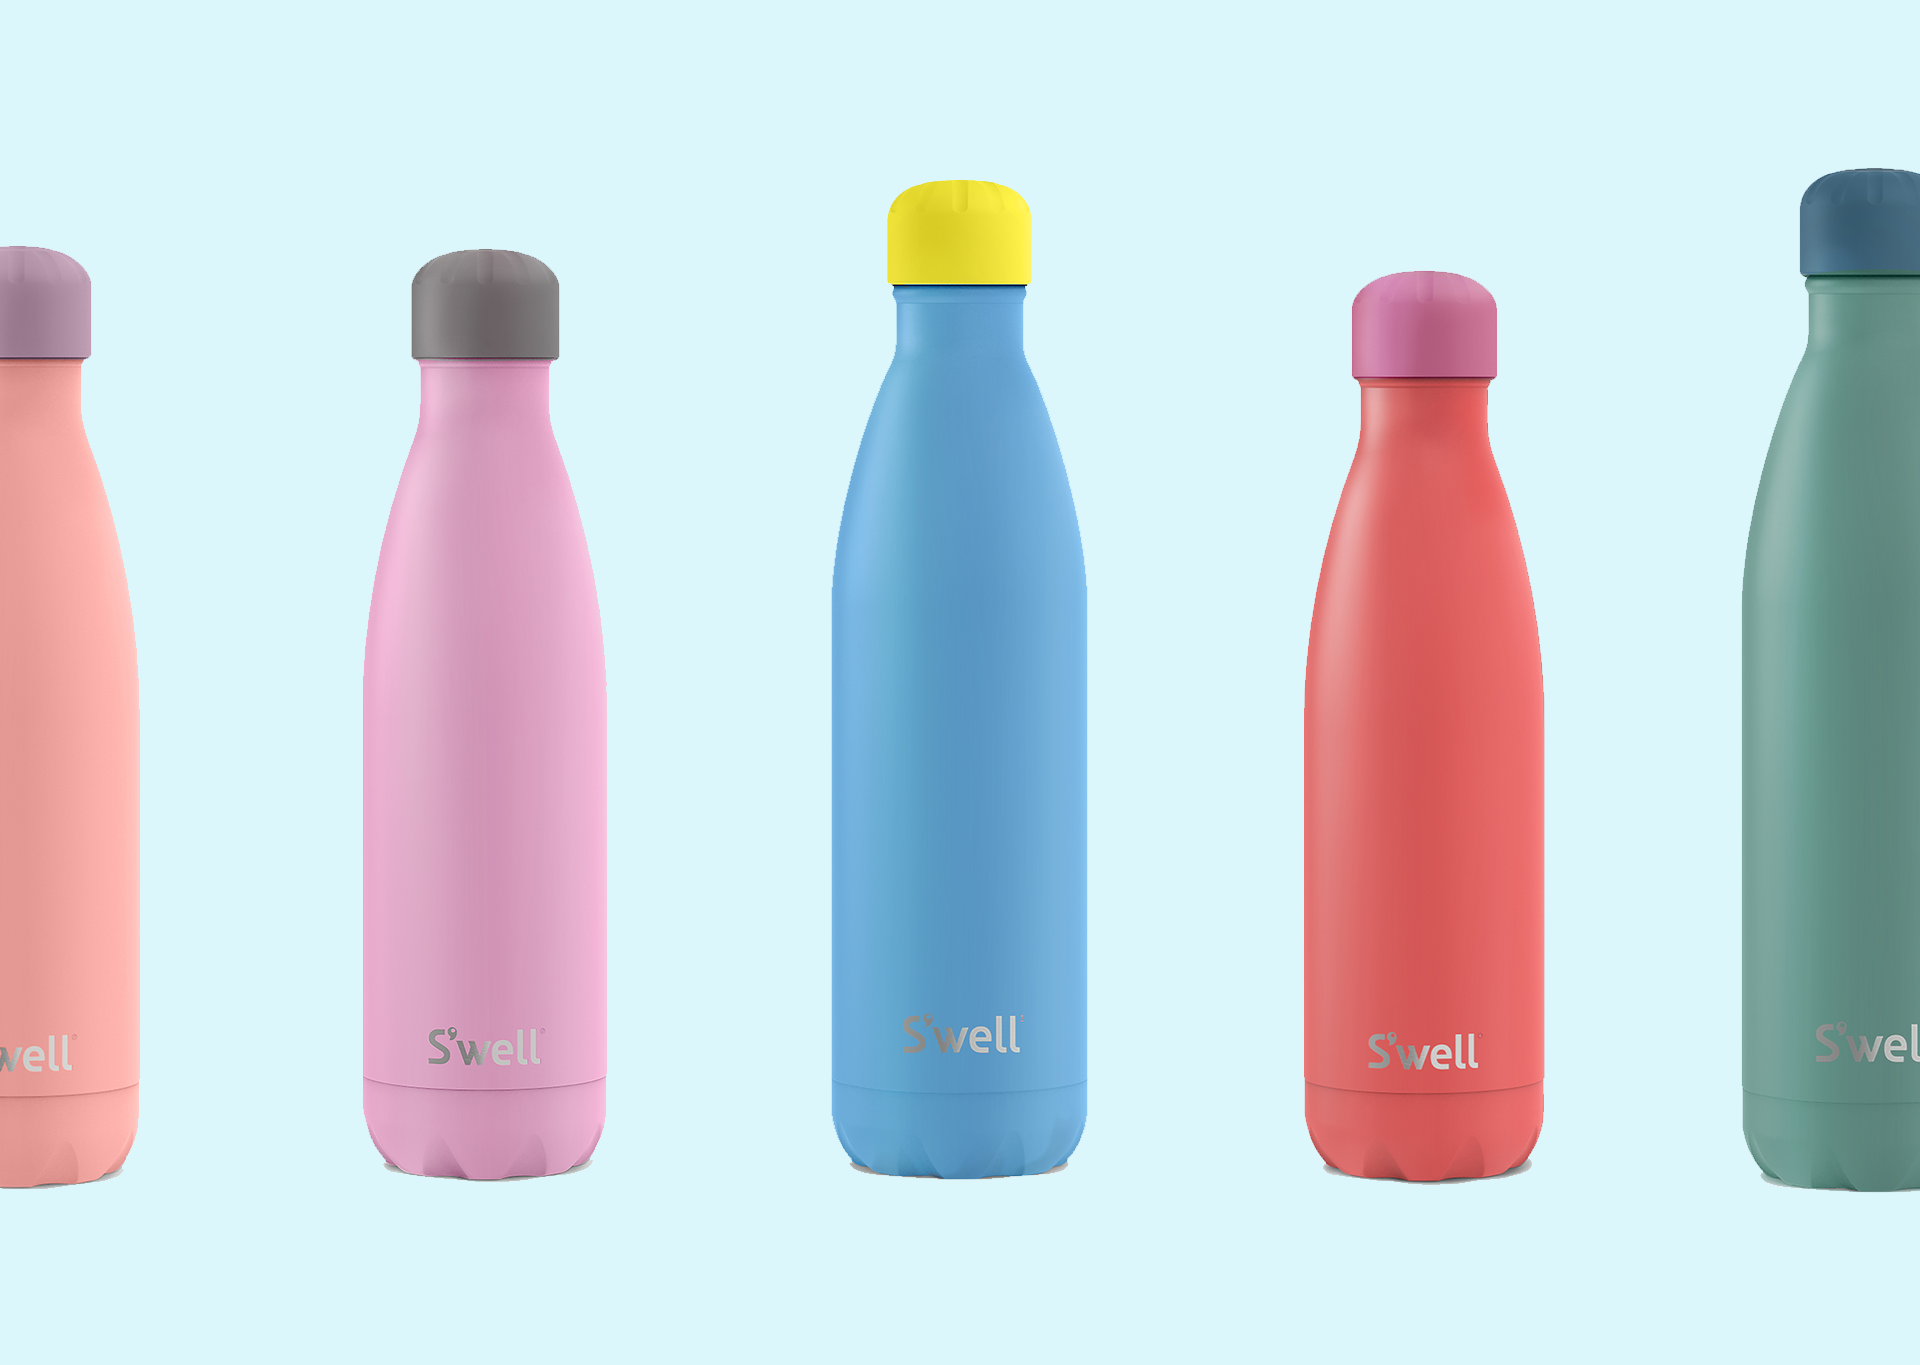 Eternally Grapeful: S'well's New Colorful Water Bottles Are Beautiful and Punny